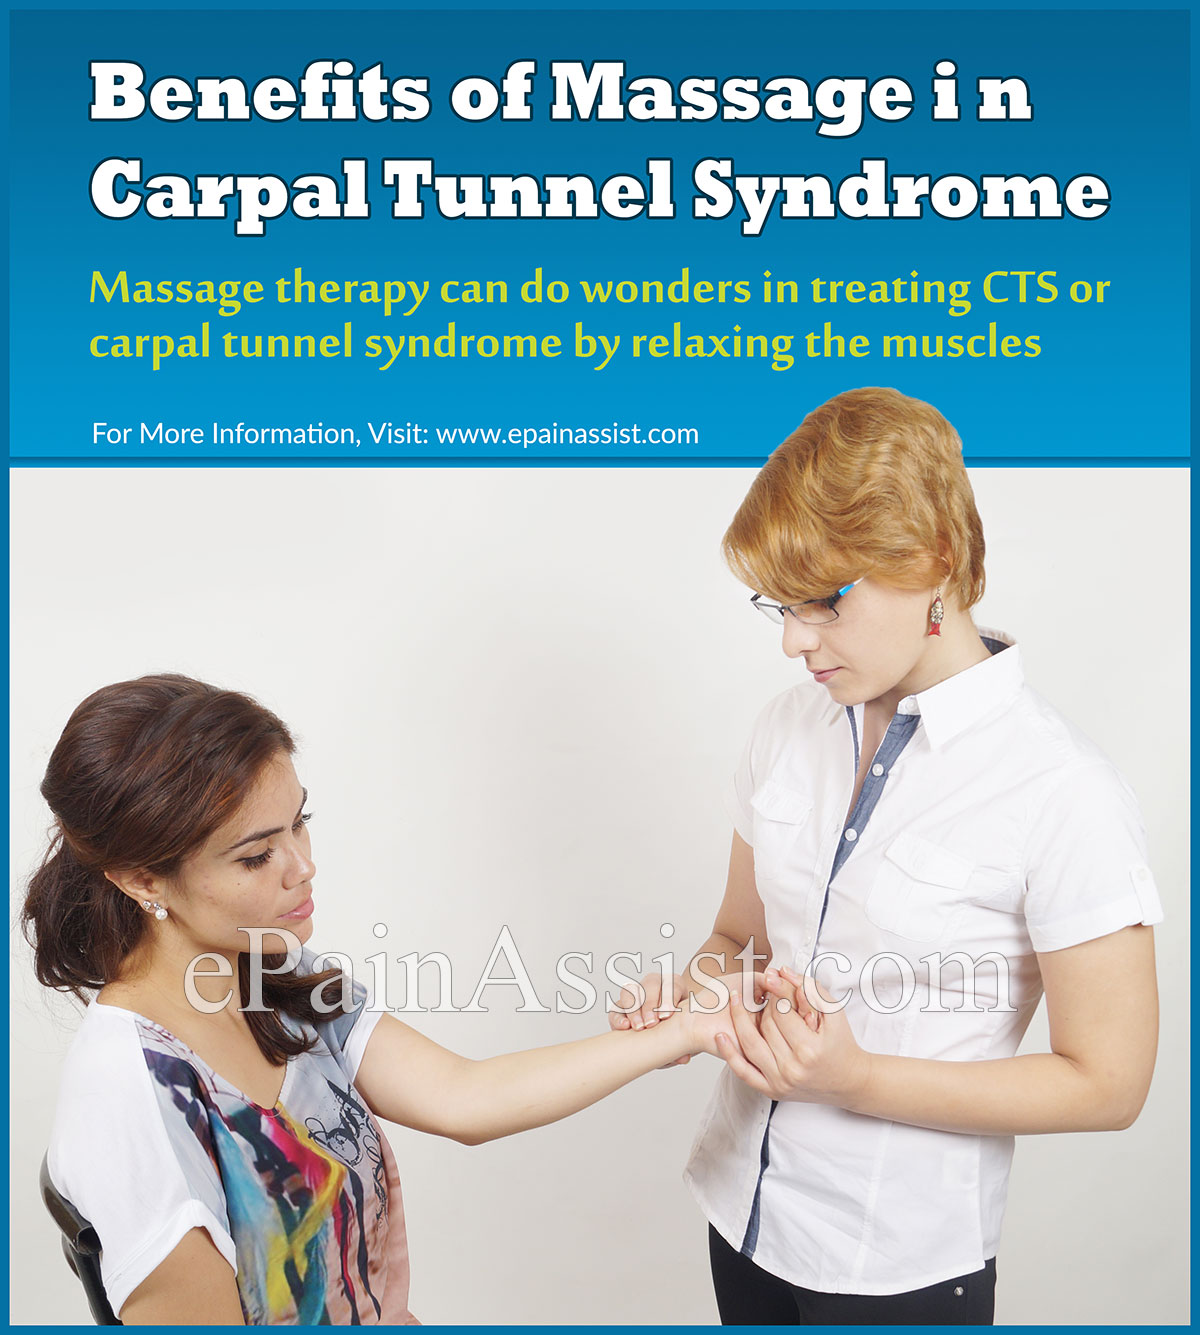 Benefits of Massage in Carpal Tunnel Syndrome